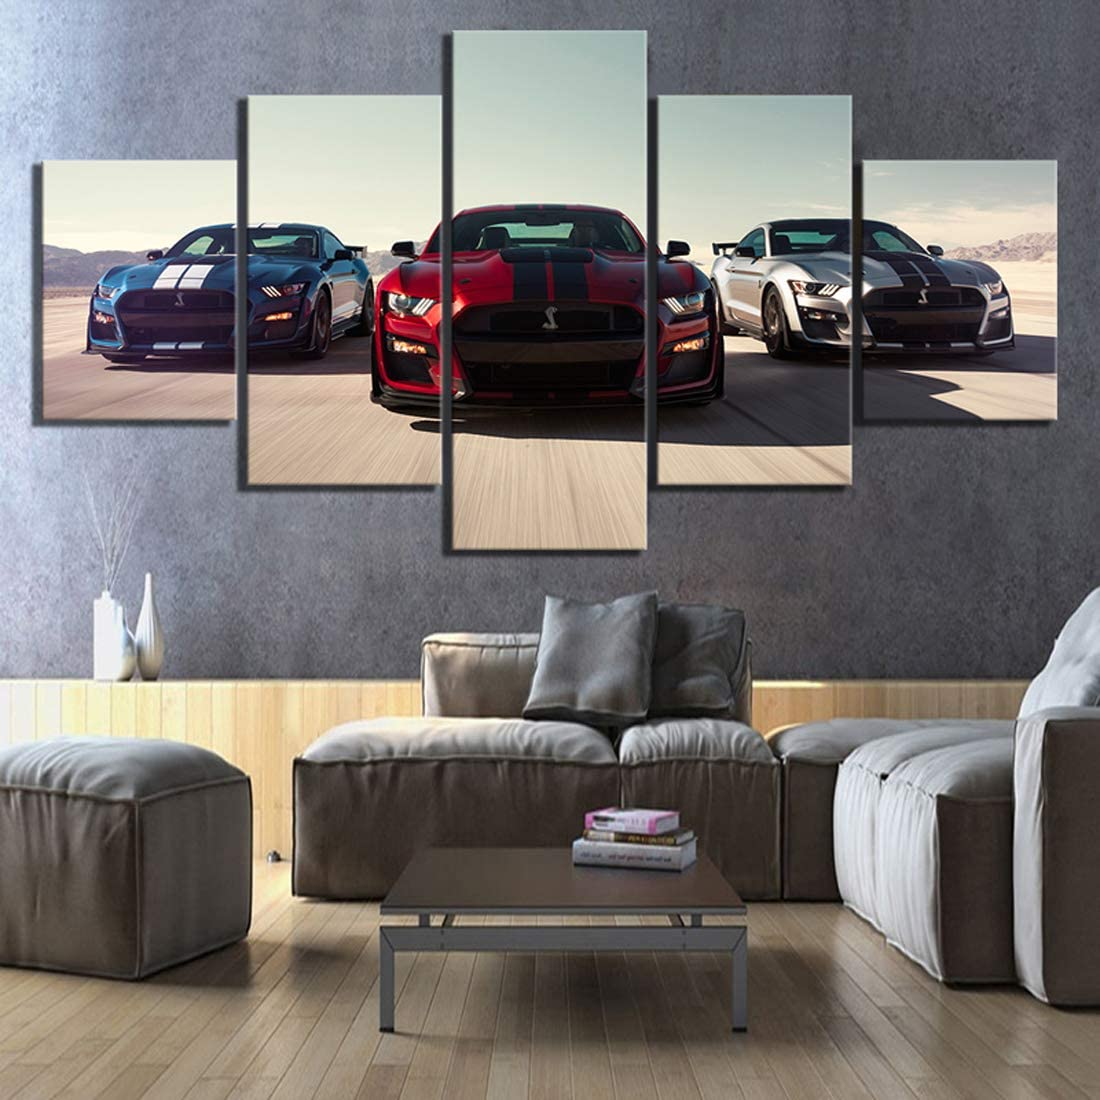 HSART 5 Pieces HD Luxury Cars Pictures Print Ford Mustang Shelby Gt500 Poster Canvas Art Decorative Paintings for Home Decor Wall Art,B,40x60x2+40x100x1+40x80x2